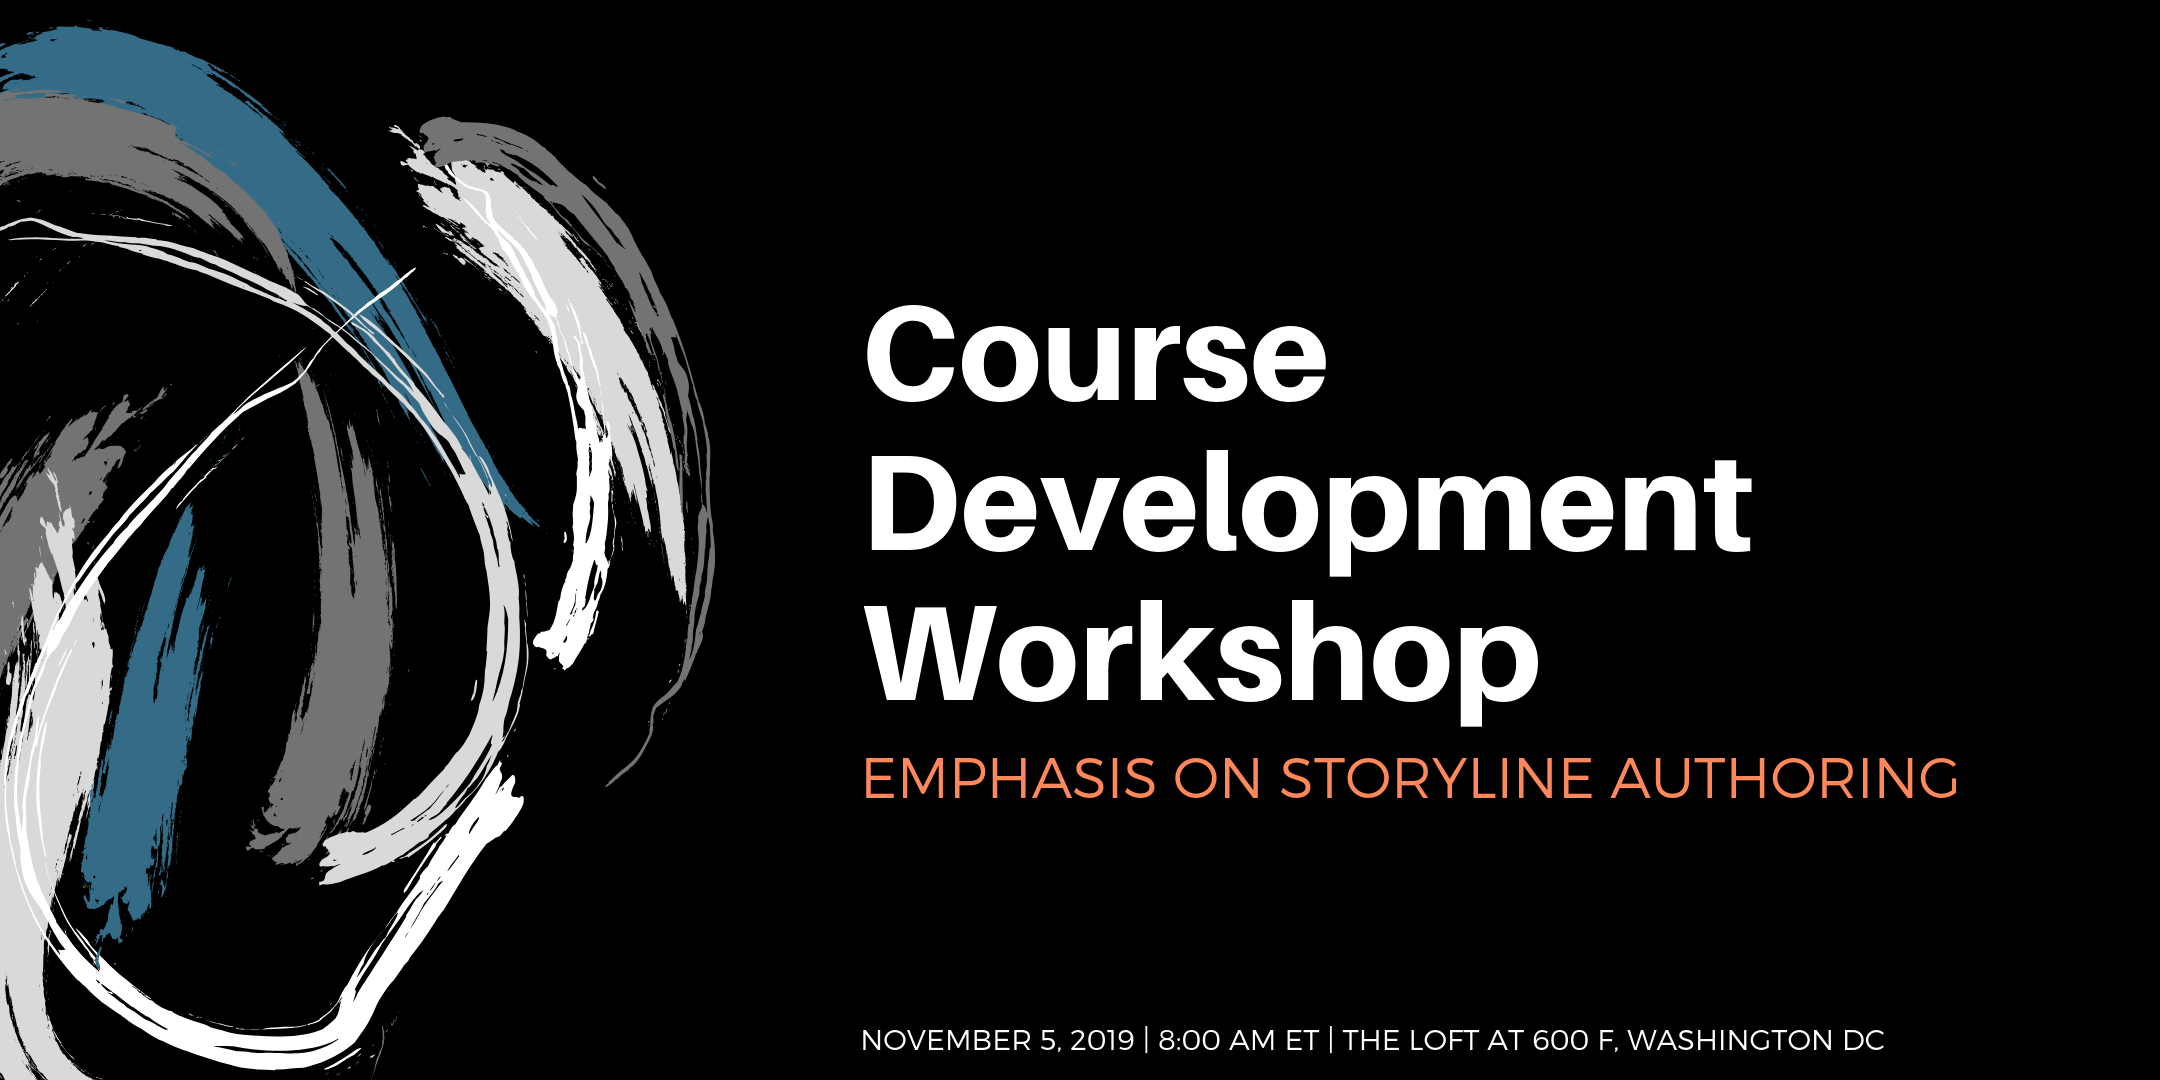 Course Development Workshop (1)